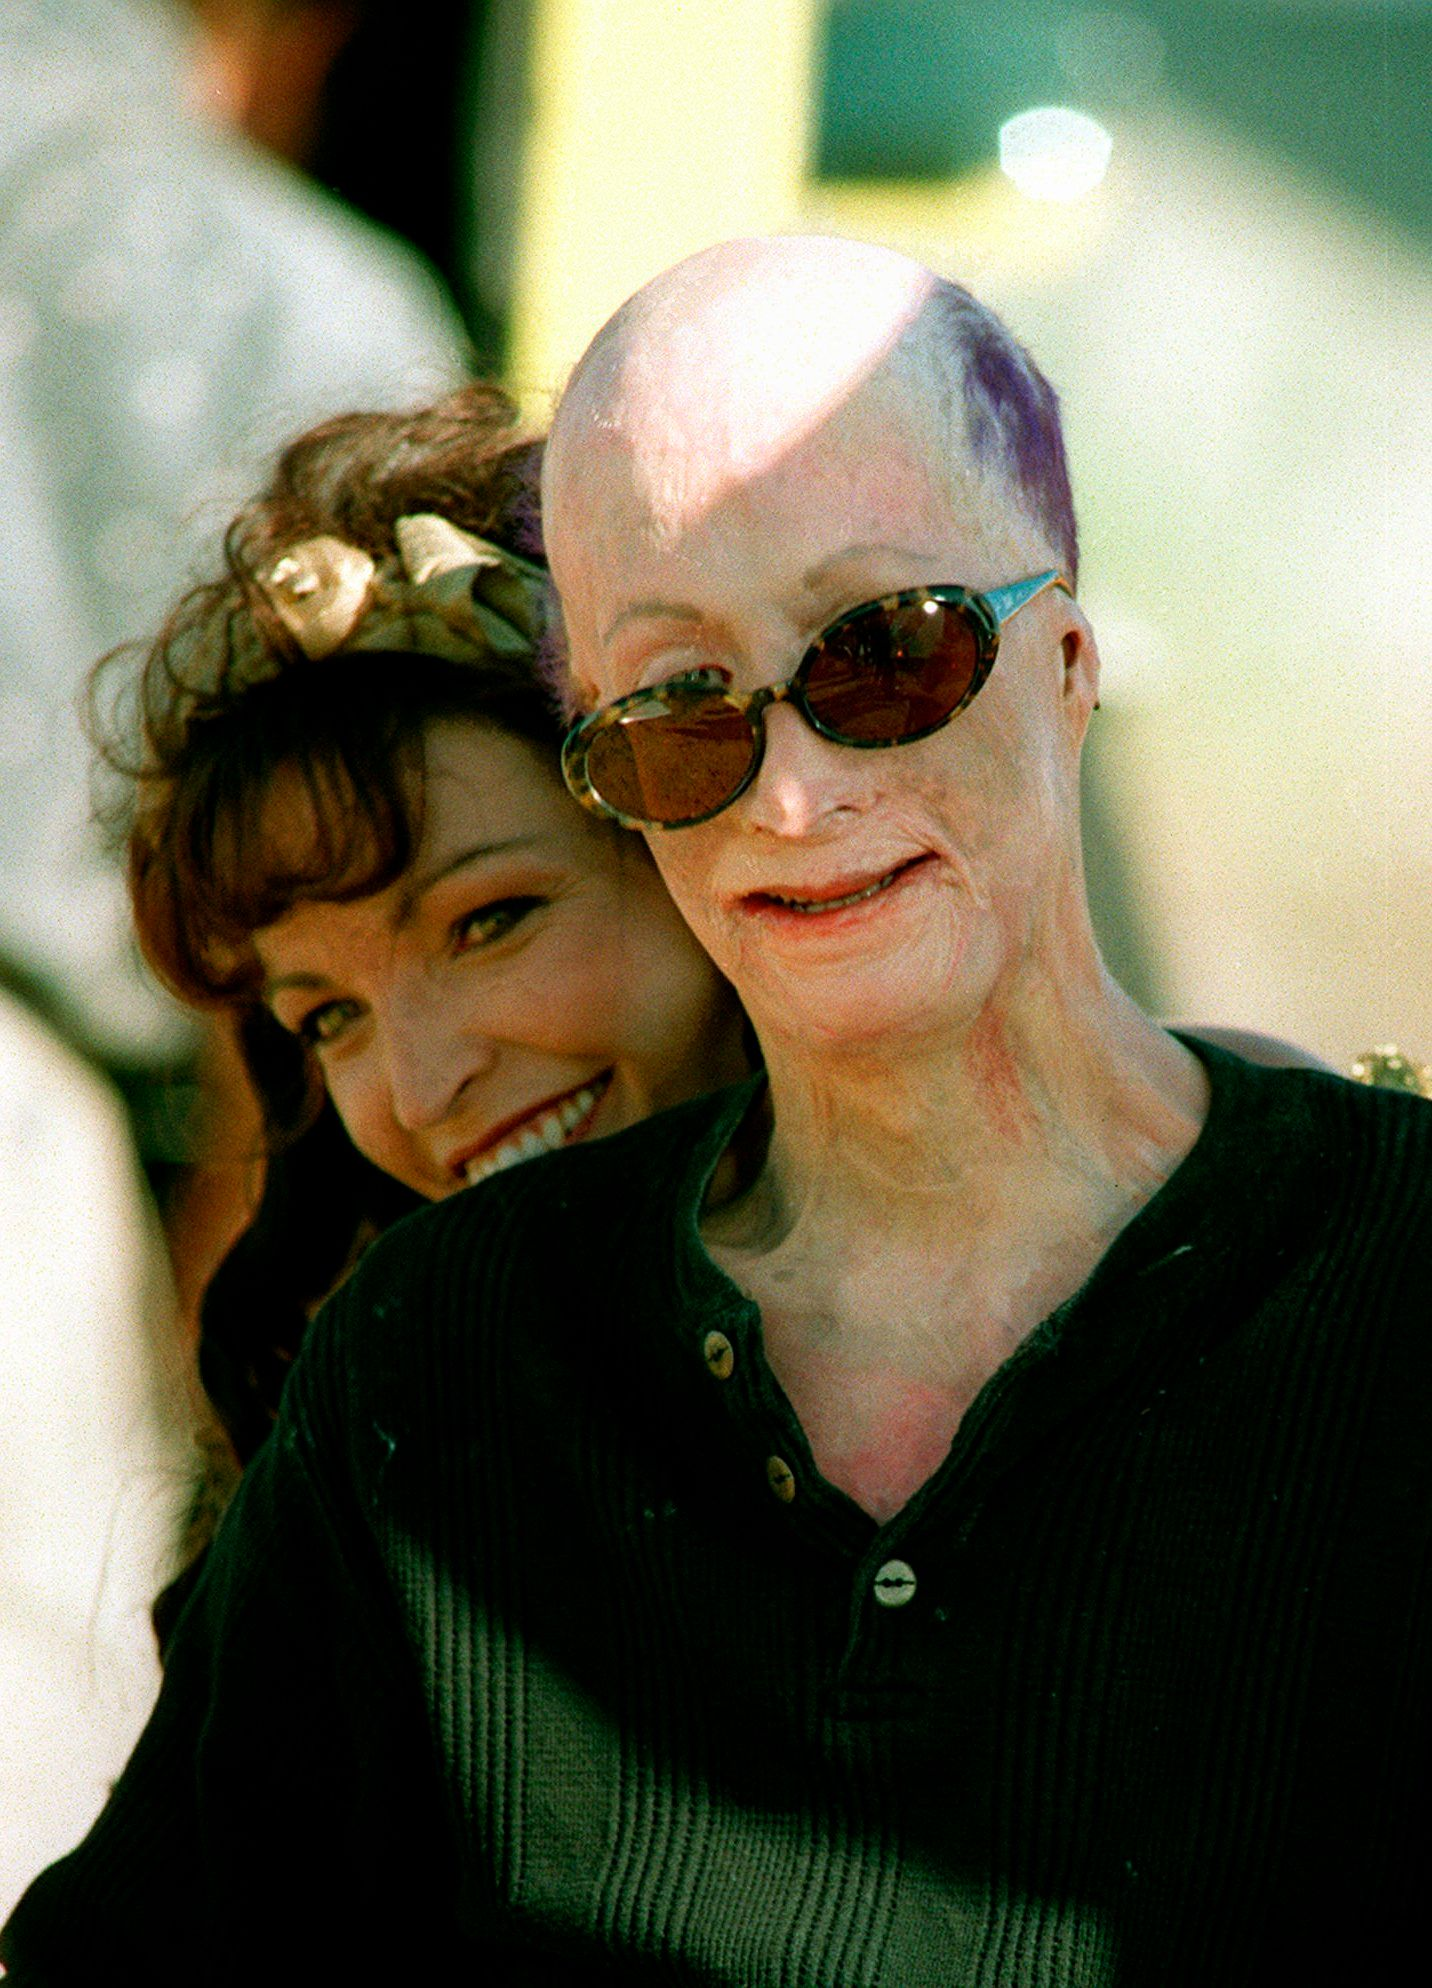 FILE - In this Sept 20 1996 file photo David Rothenberg clowns around with country singer Kelli Lidell as he directs her music video in the San Fernando Valley area of Los Angeles Rothenberg known as Dave Dave who was badly scarred at the age of 6 when his father tried to burn him to death has died He was 42 Clark County Coroner John Fudenberg says Dave died on July 15 2018 at a Las Vegas hospital The cause of death is under investigation Dave was a respected Las Vegas artist and a close friend of Michael Jackson AP Photo/Michael Caulfield File  1